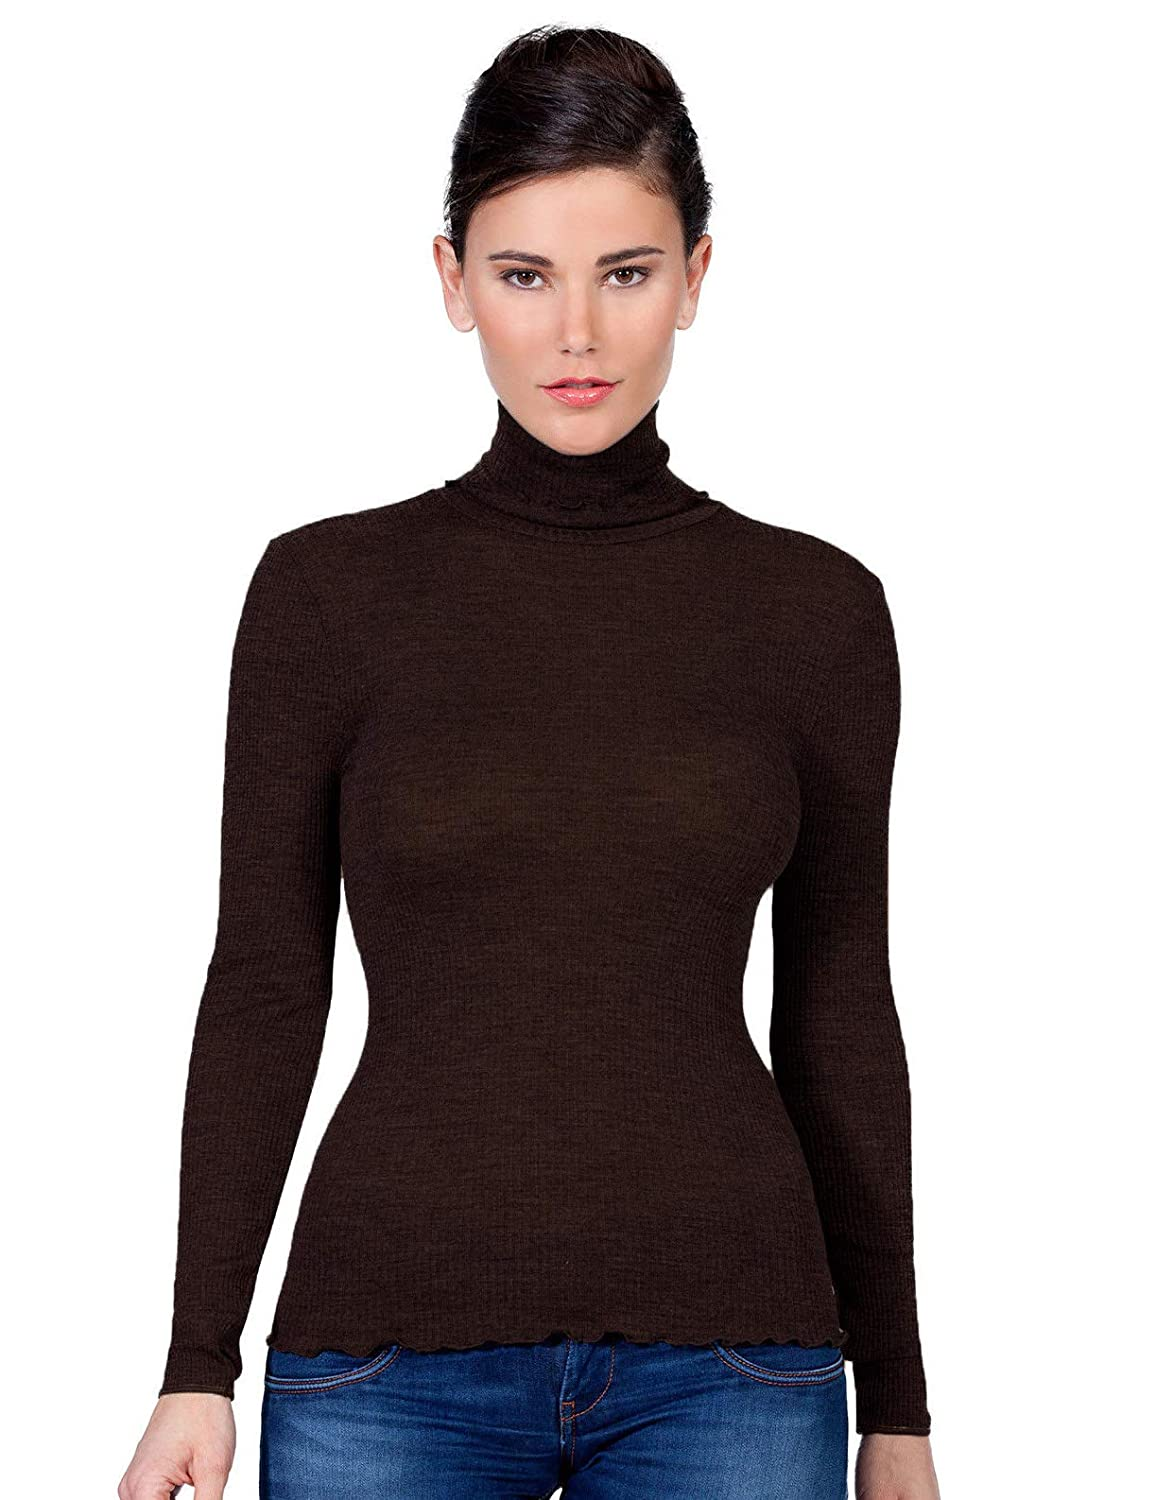 EGI Luxury Wool Silk Turtleneck Long Sleeve Top Proudly Made in Italy.